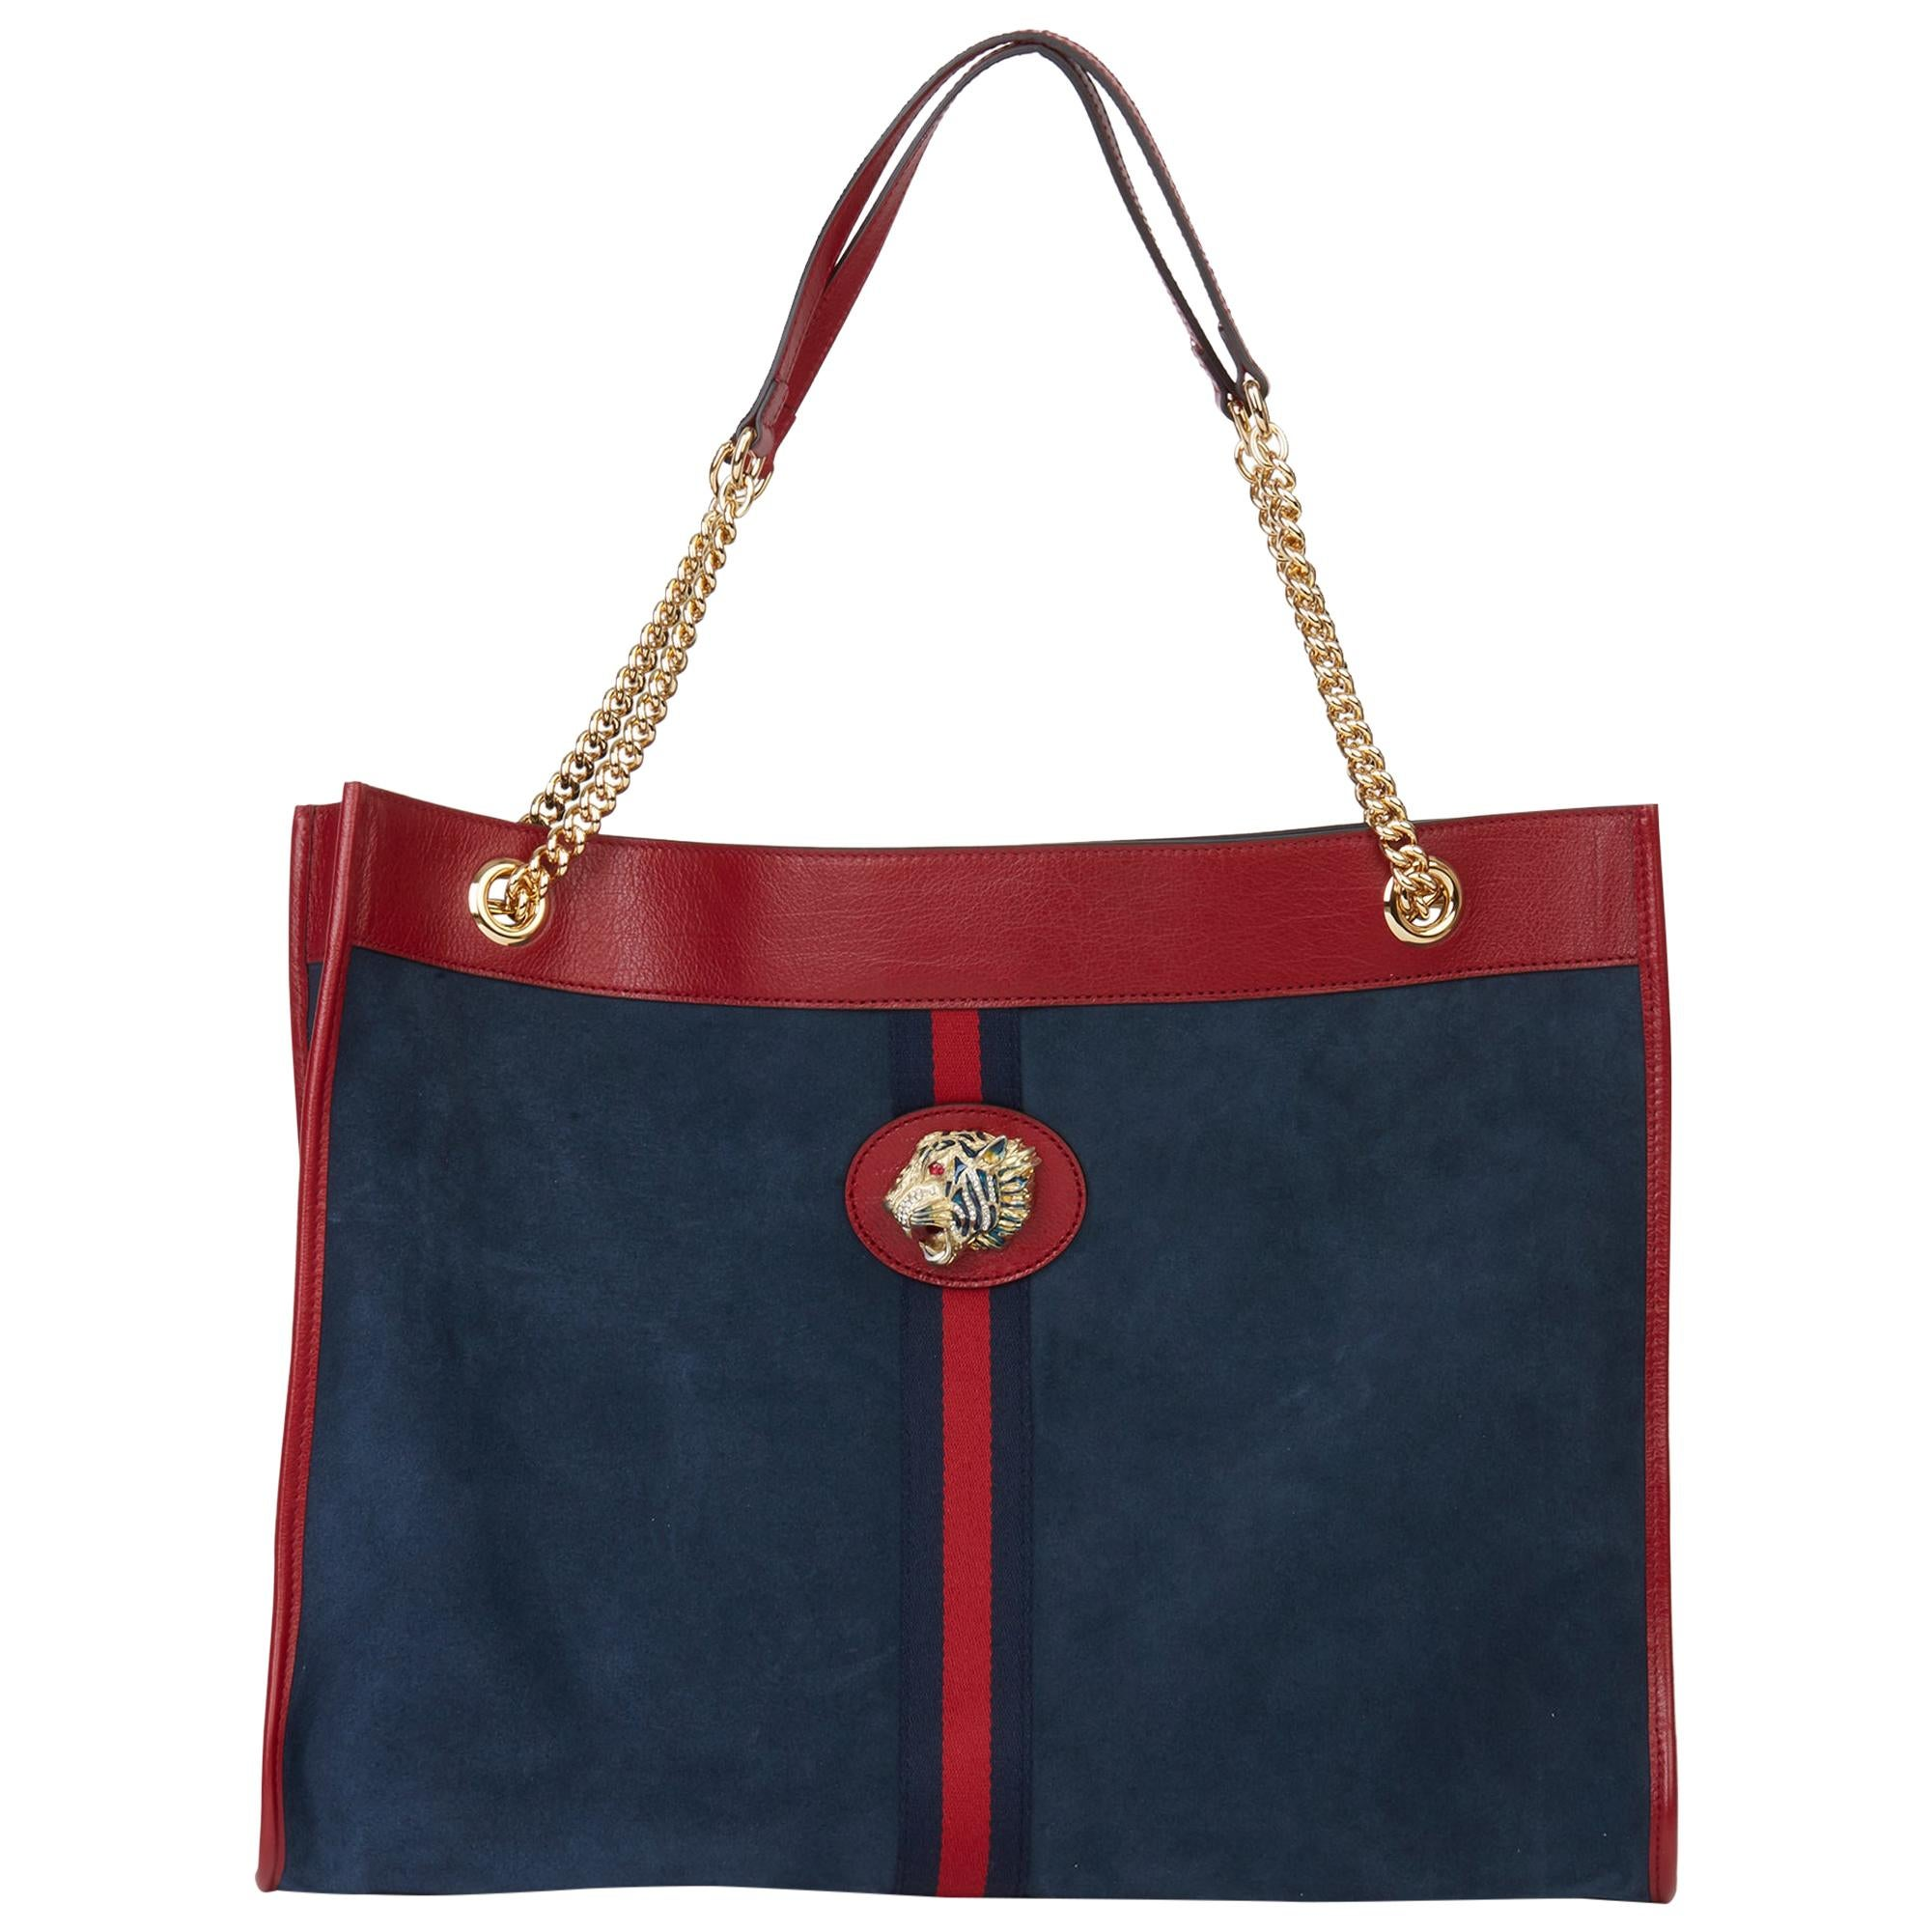 2020 Gucci Red Aged Calfskin Leather & Blue Suede Web Large Rajah Tote